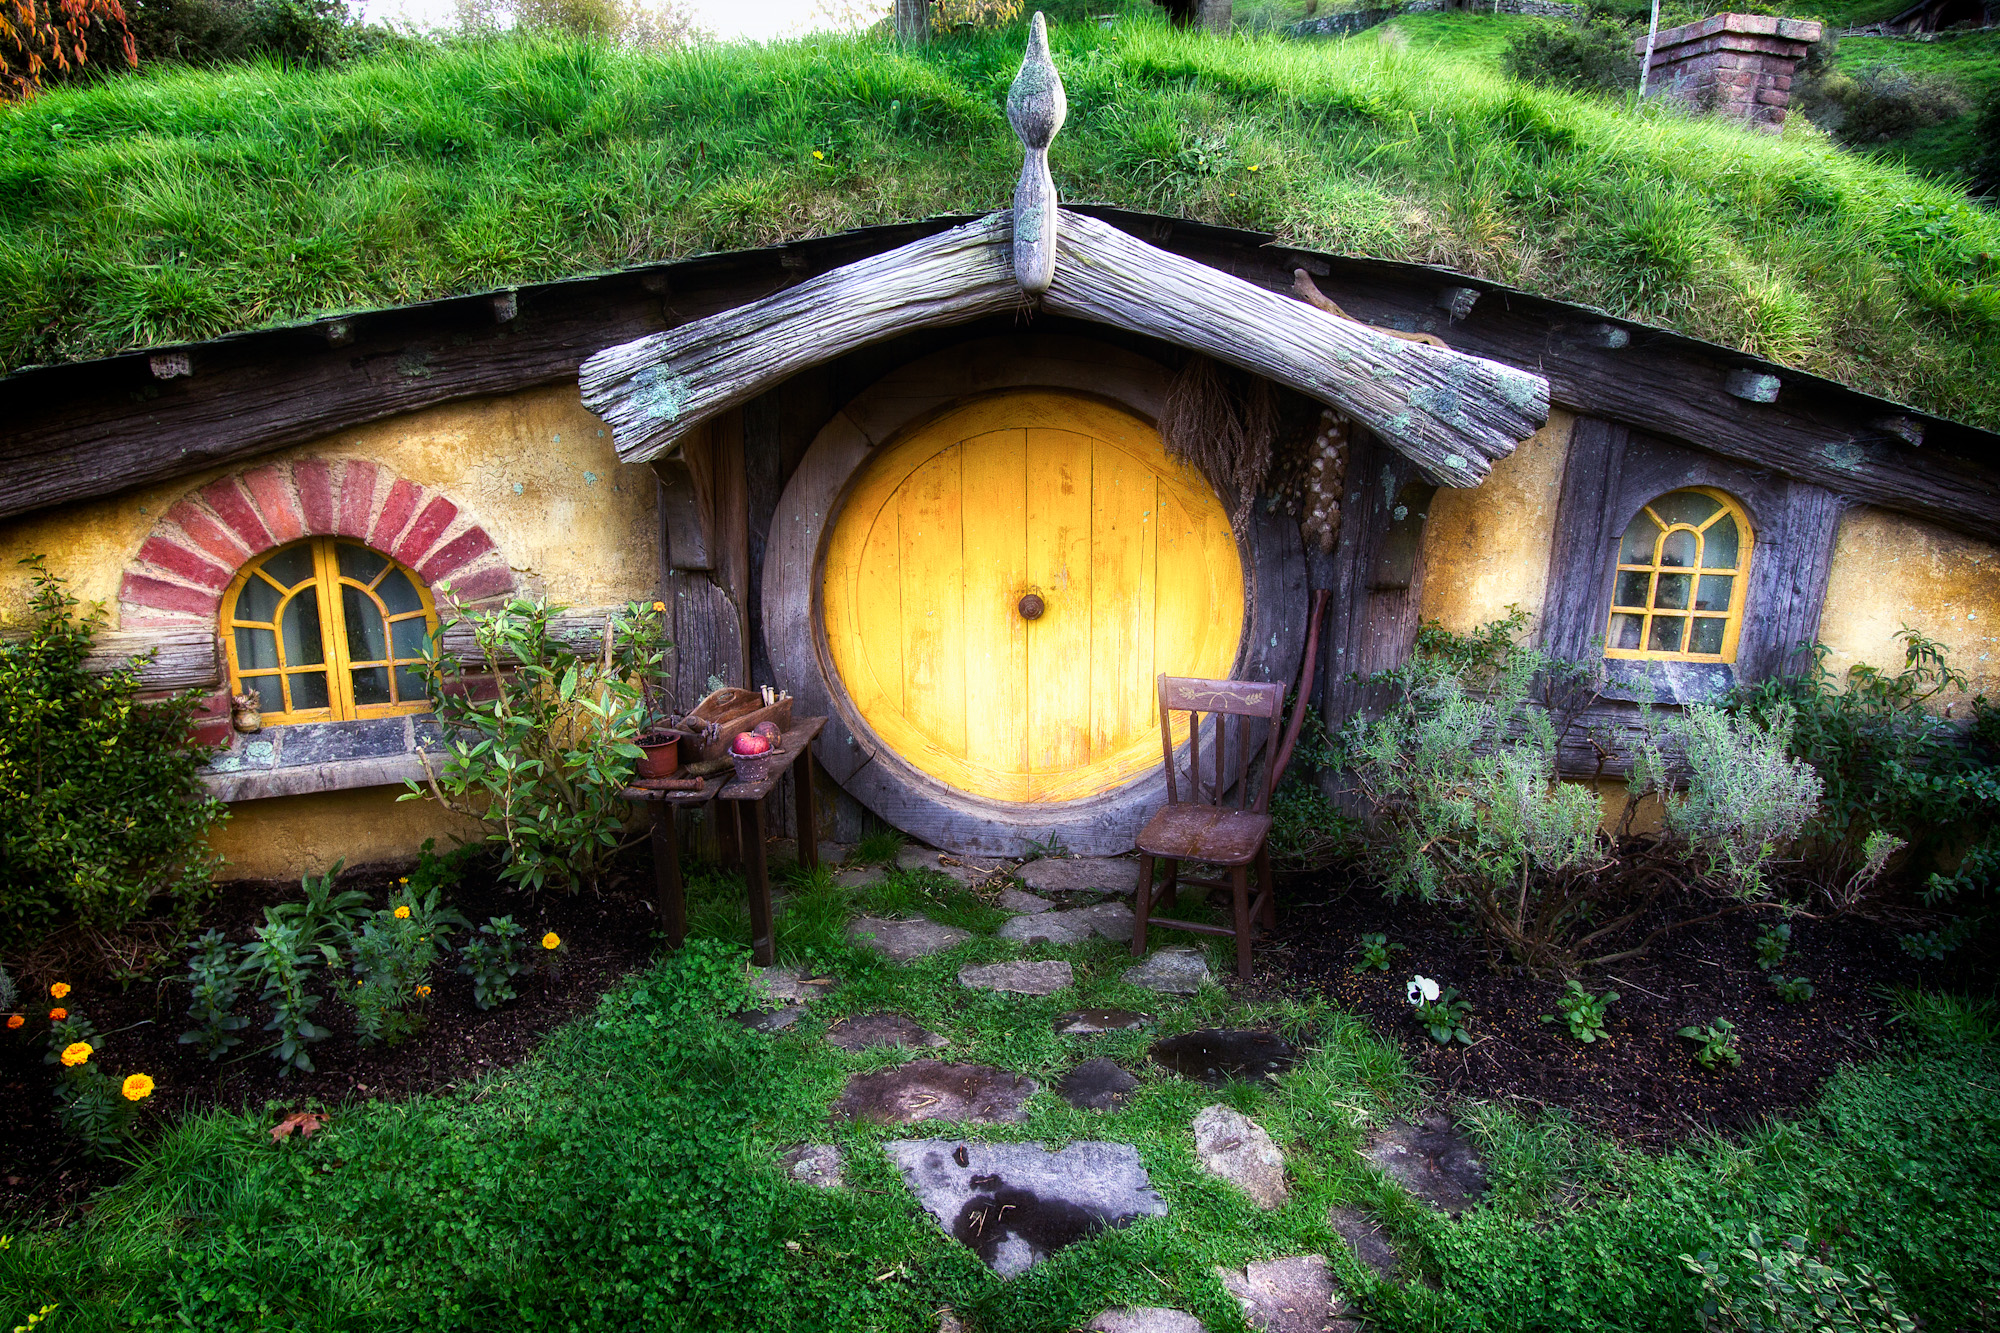 Image gallery hobbit house new zealand for Hobbit house images